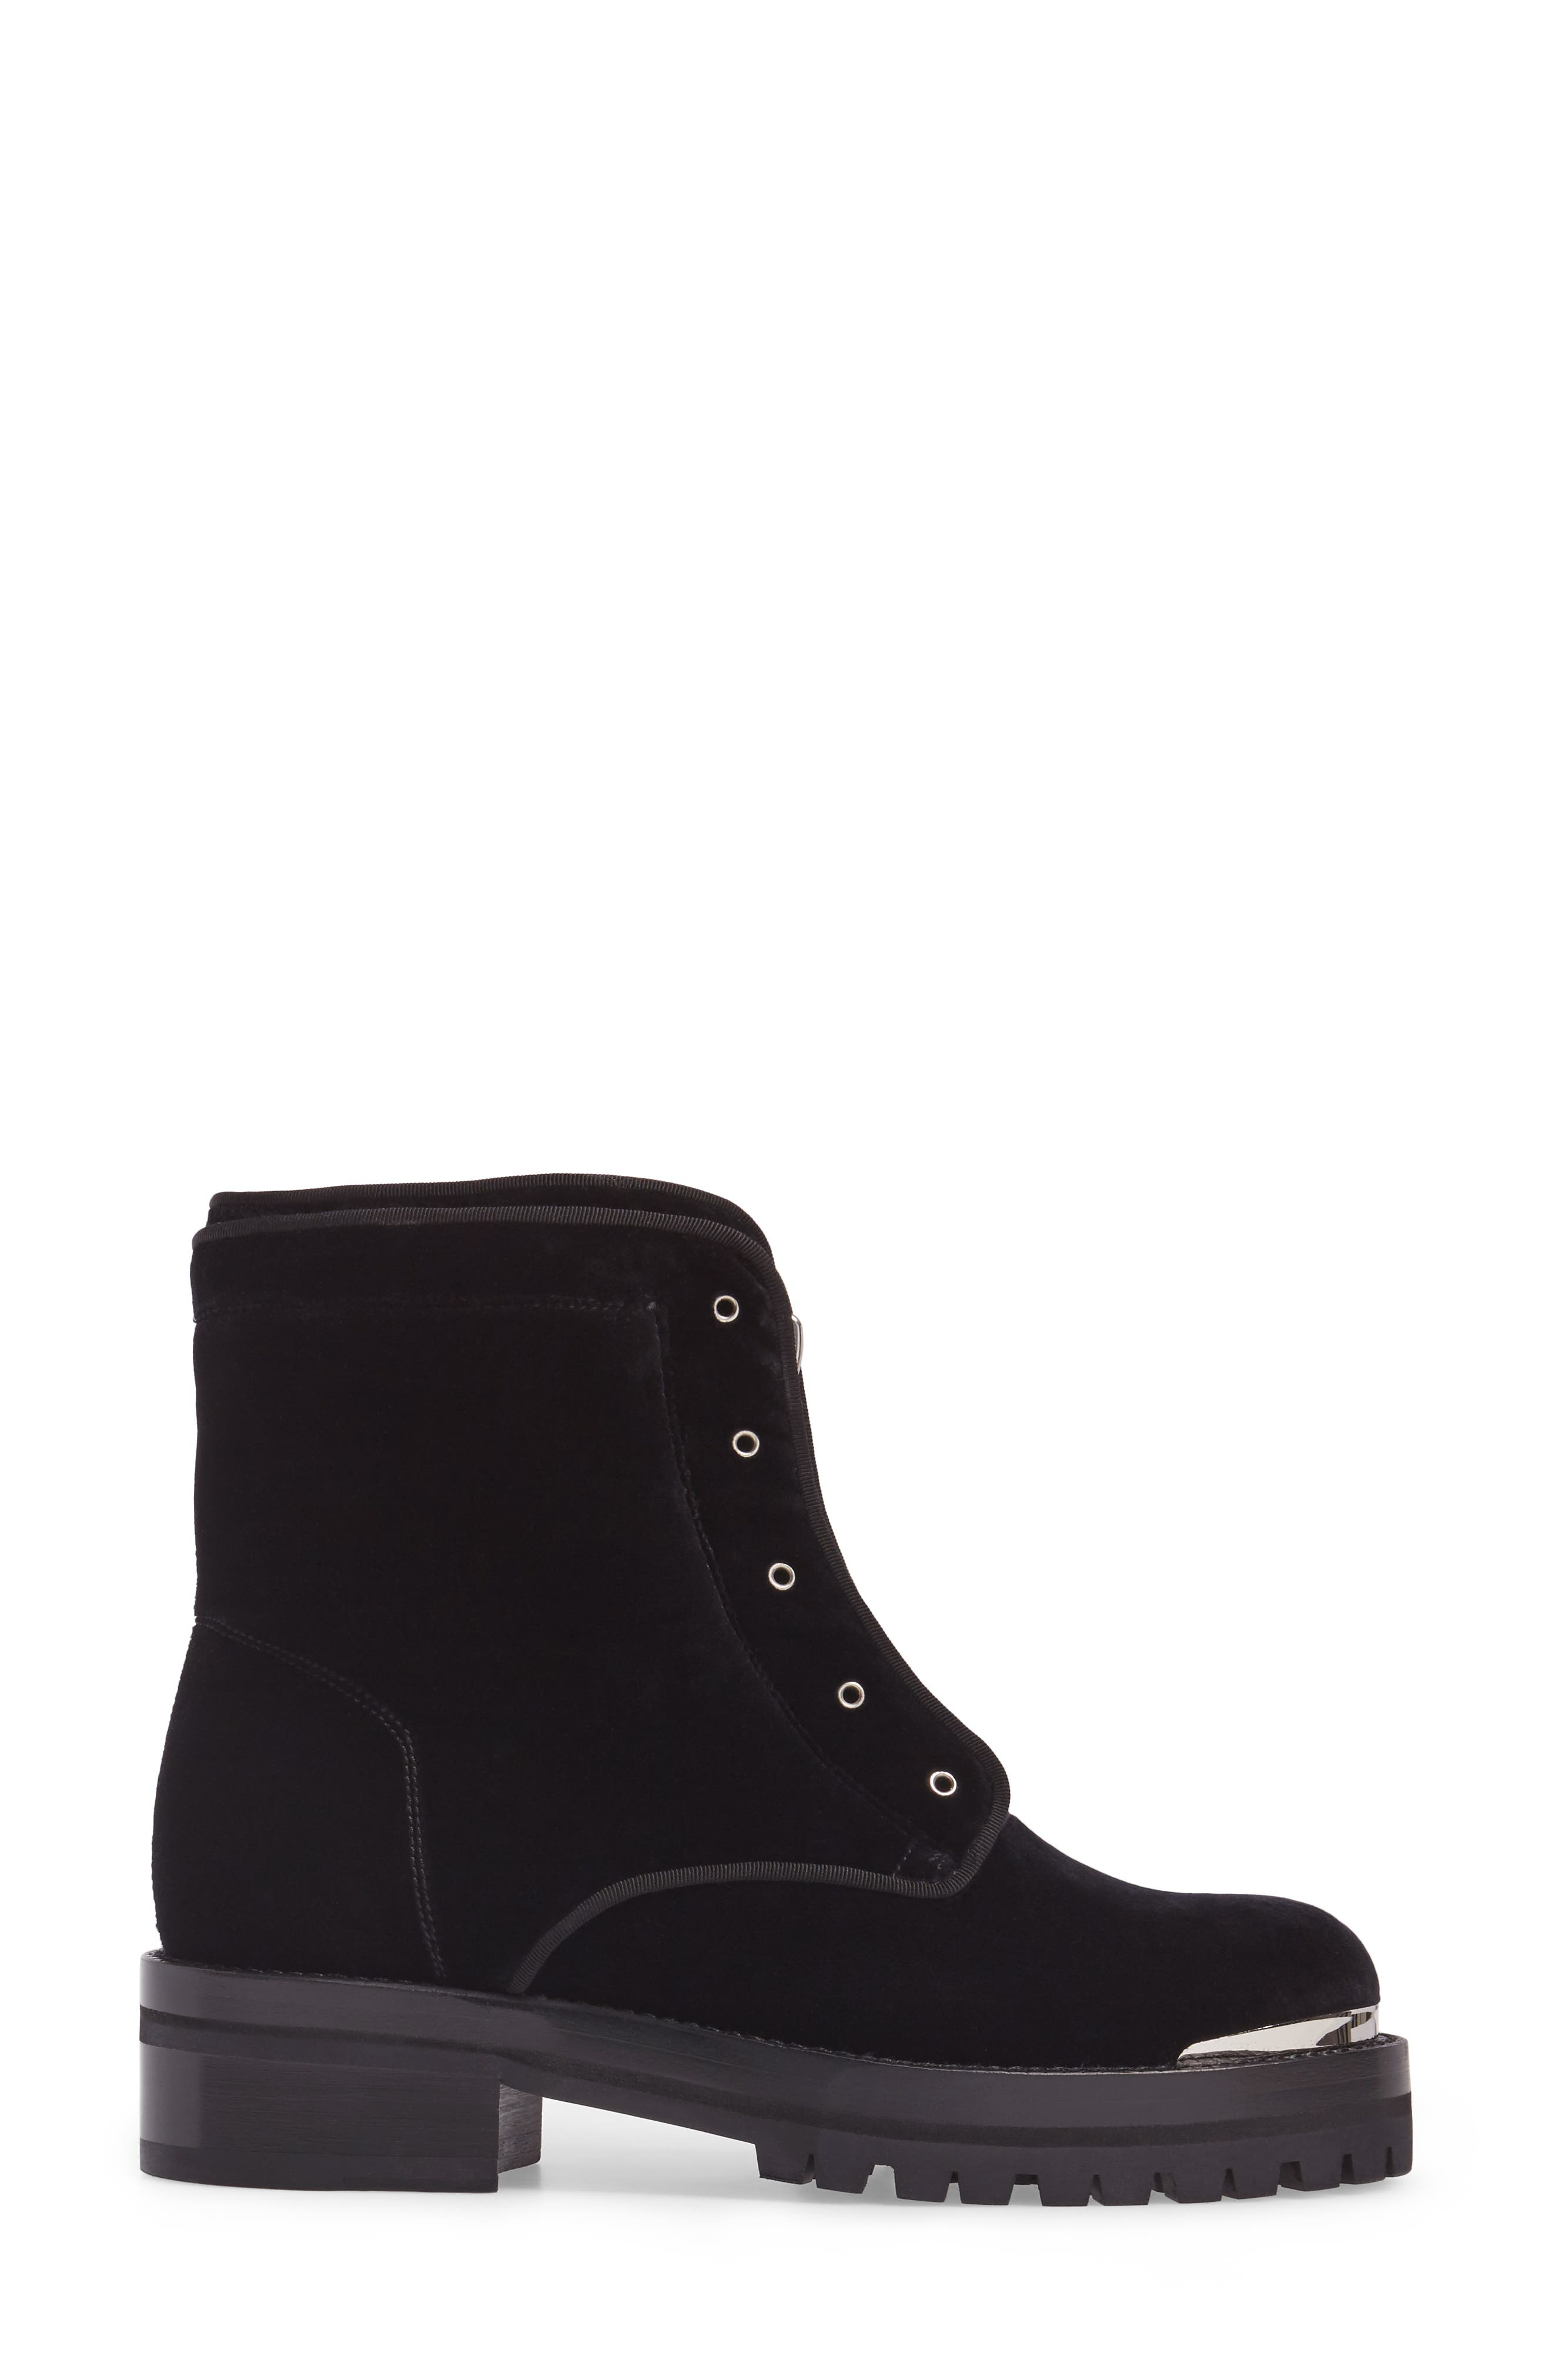 Ankle Boot,                             Alternate thumbnail 3, color,                             001